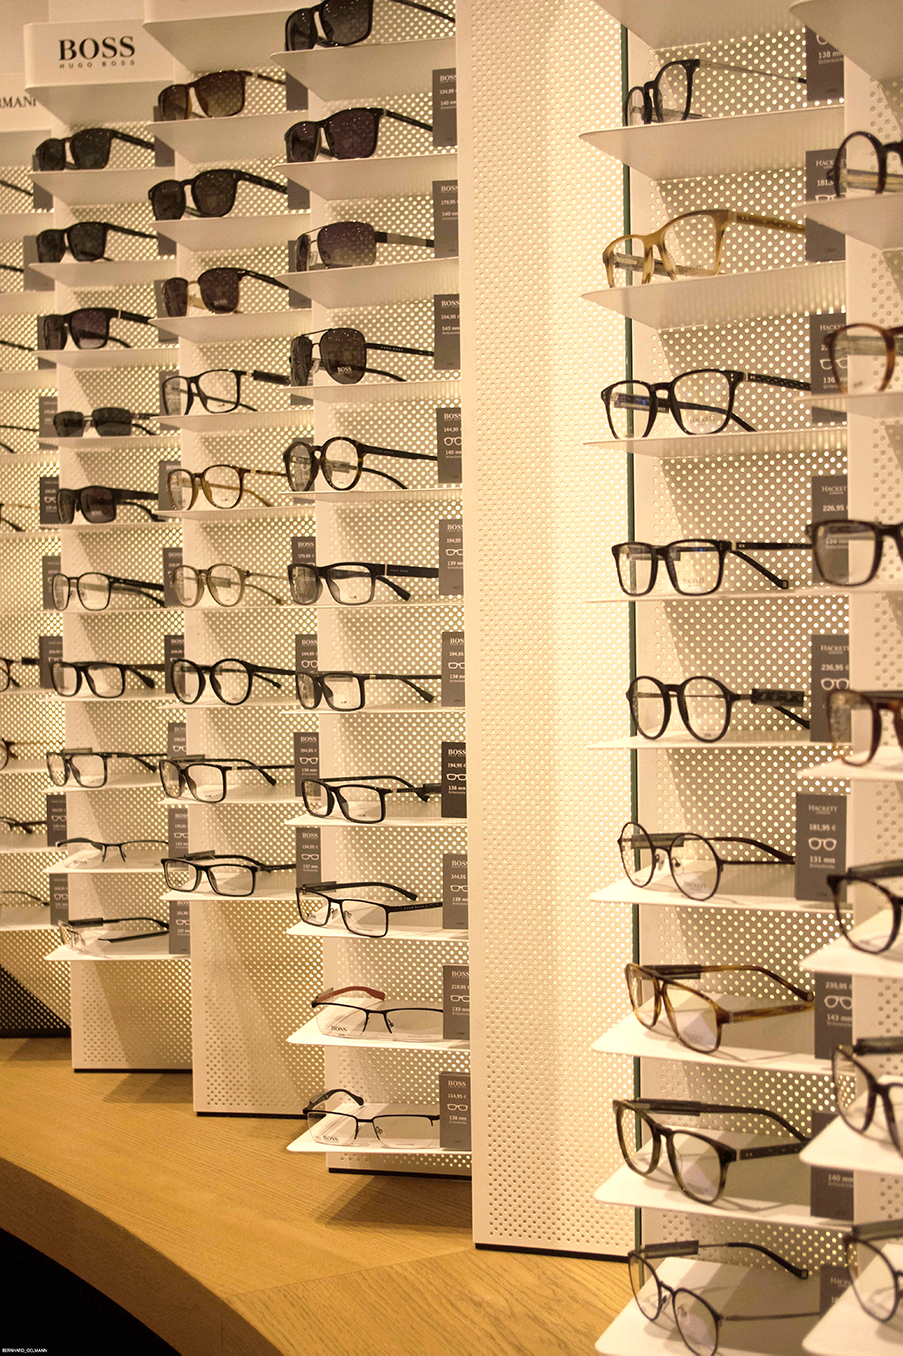 Just-take-a-look Berlin - Mister Spex - Bildschirmarbeitsplatzbrille-2.22